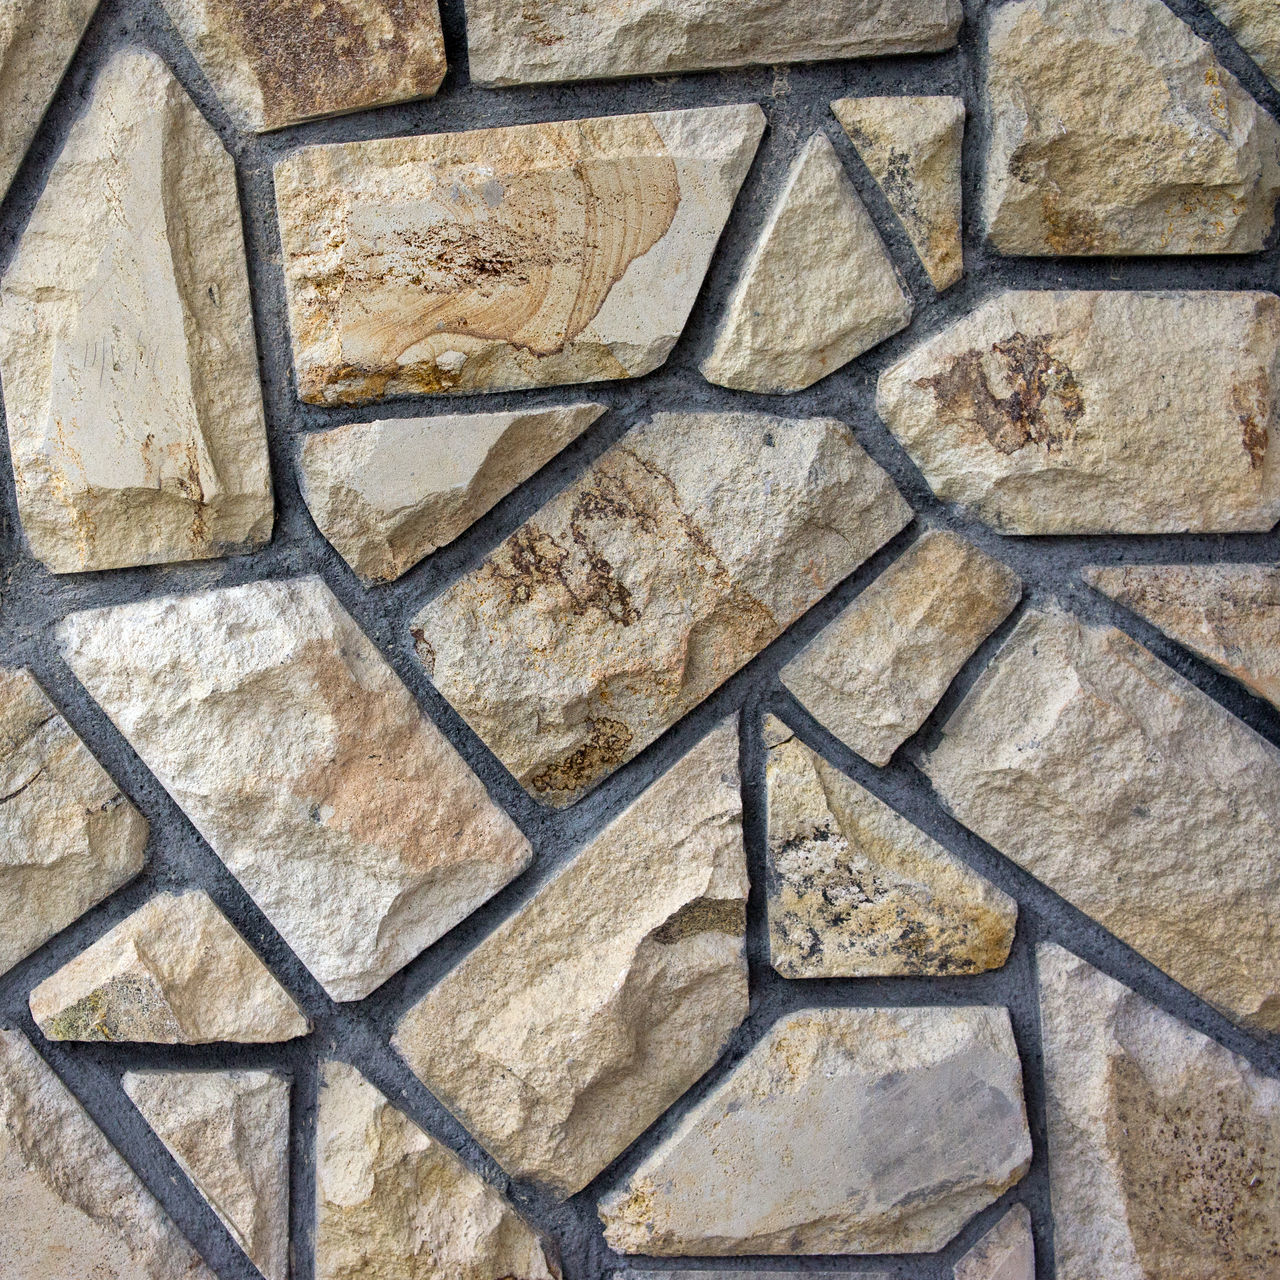 backgrounds, full frame, stone material, marble, pattern, textured, no people, outdoors, day, architecture, nature, close-up